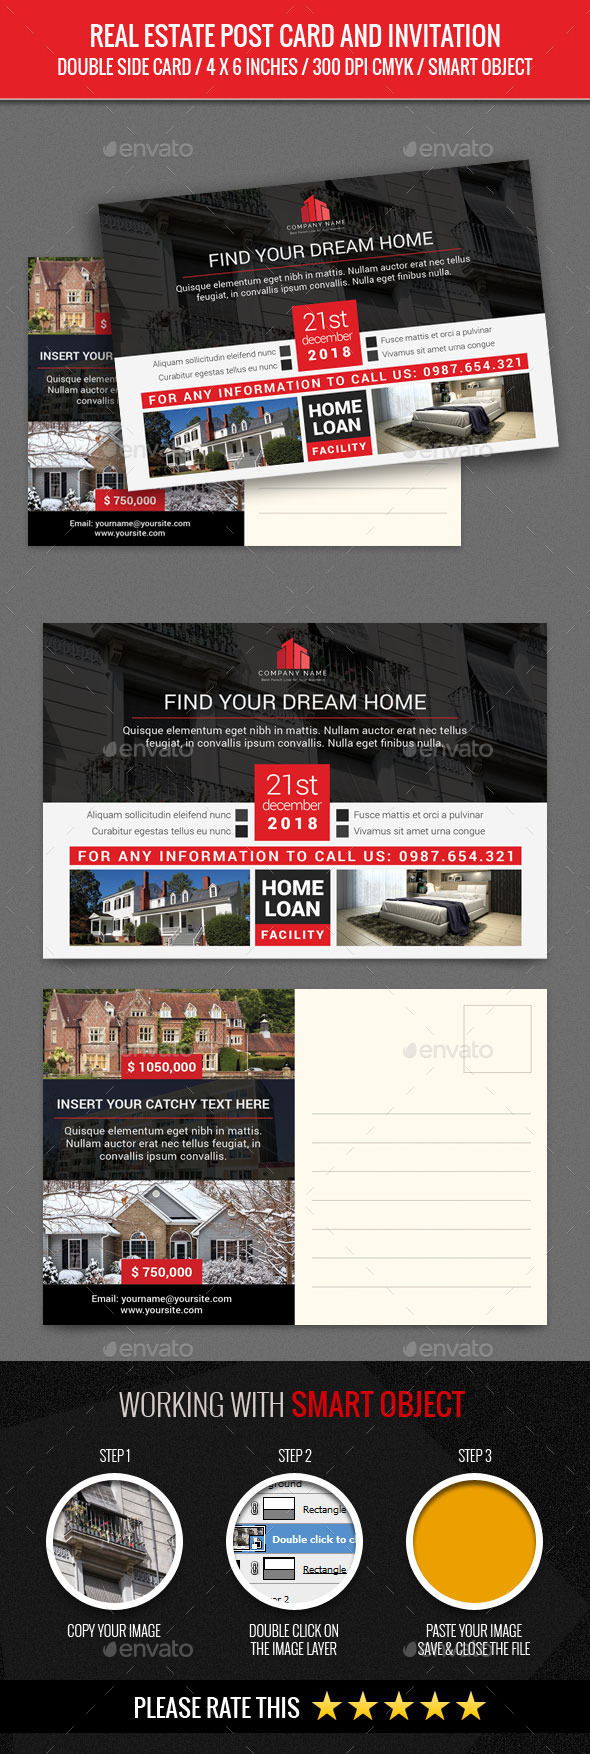 Real Estate Post Card Template - Cards & Invites Print Templates